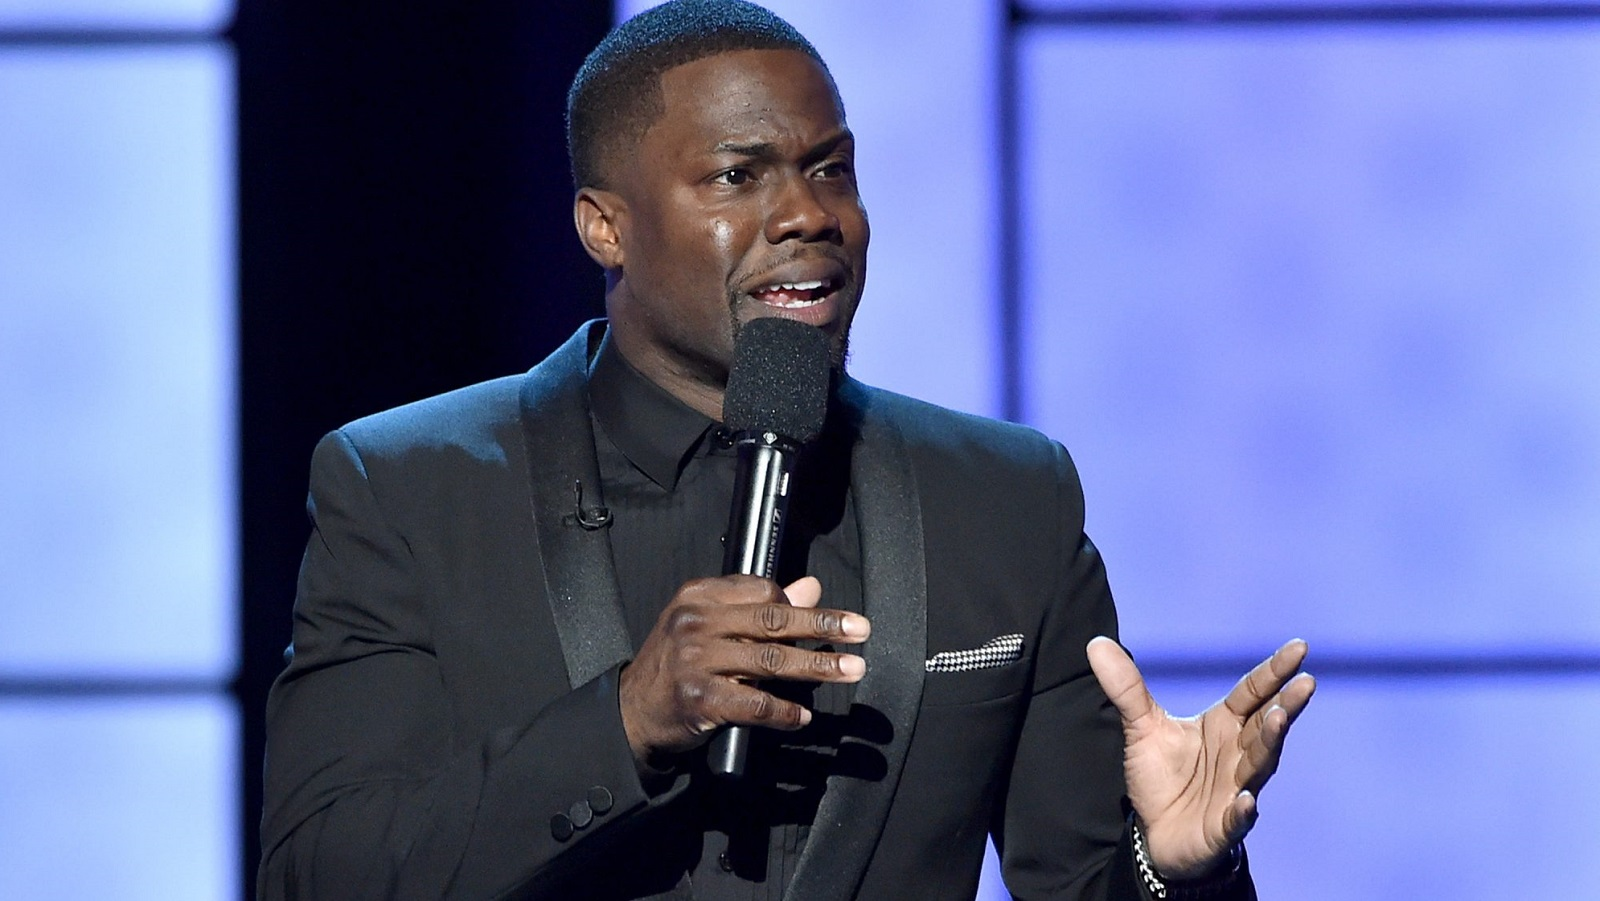 Kevin Hart sold out two shows in Buffalo's First Niagara Center. (Getty Images)